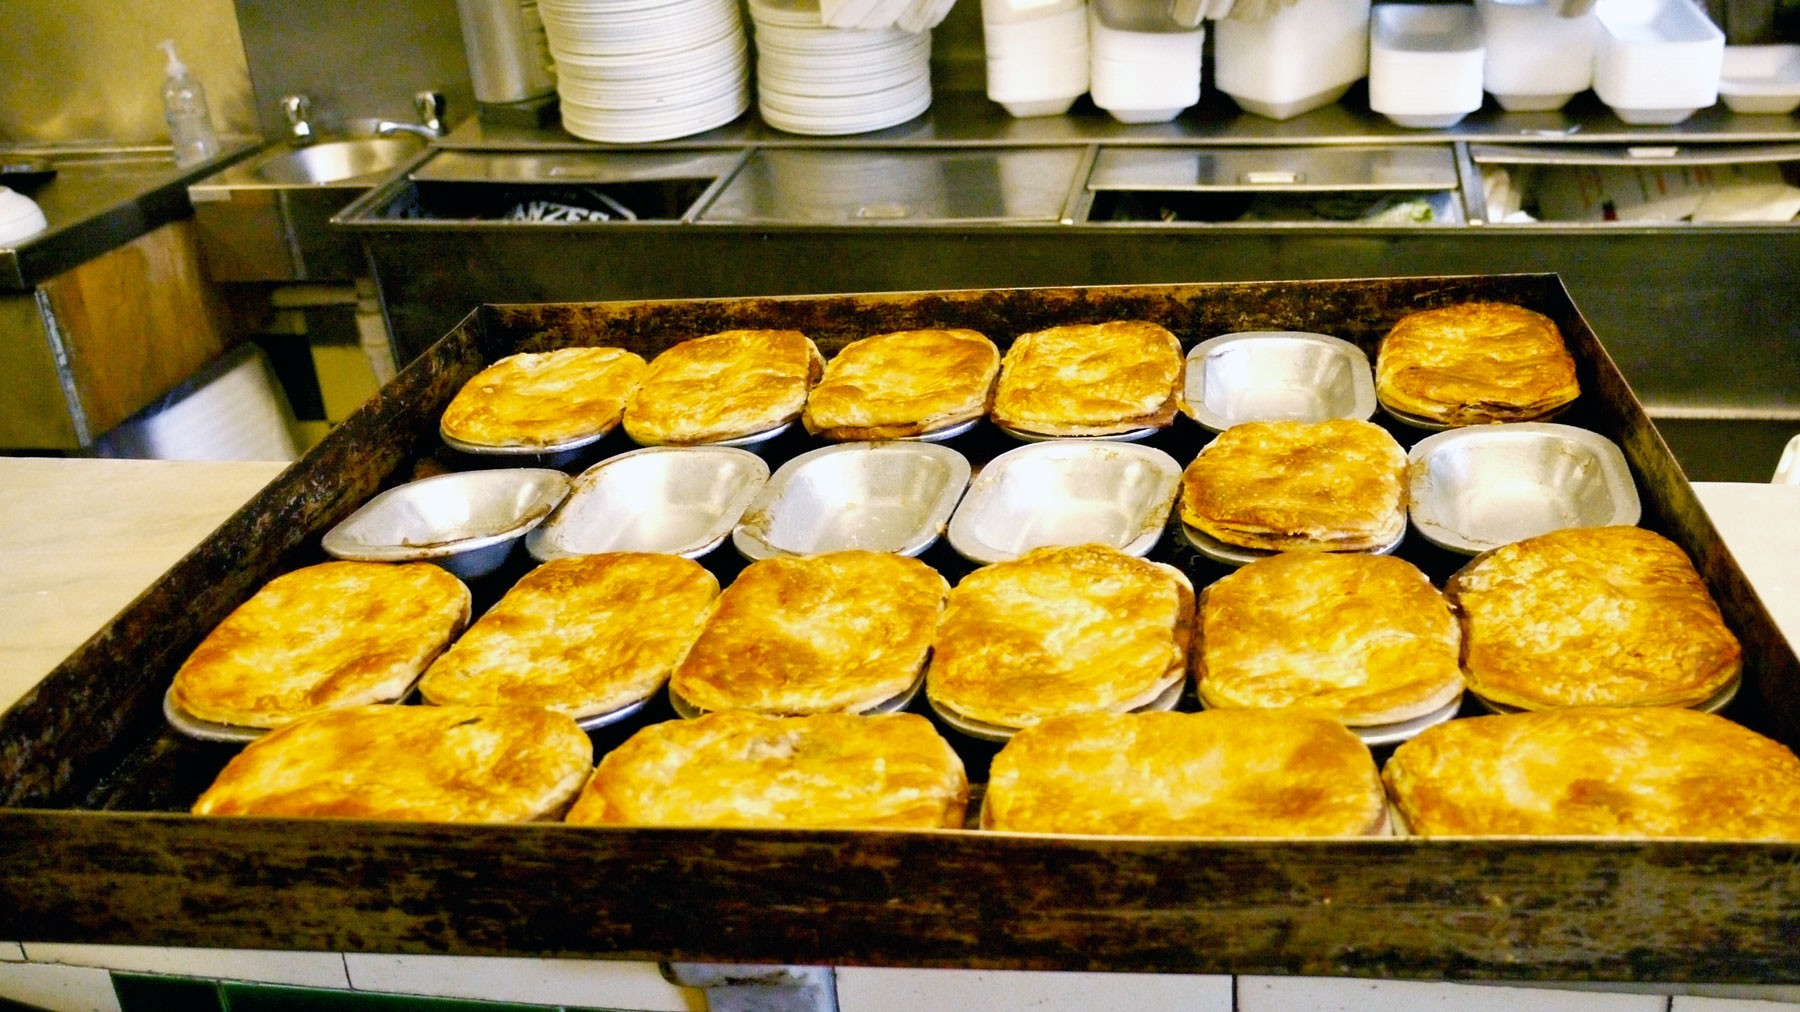 tray of pies